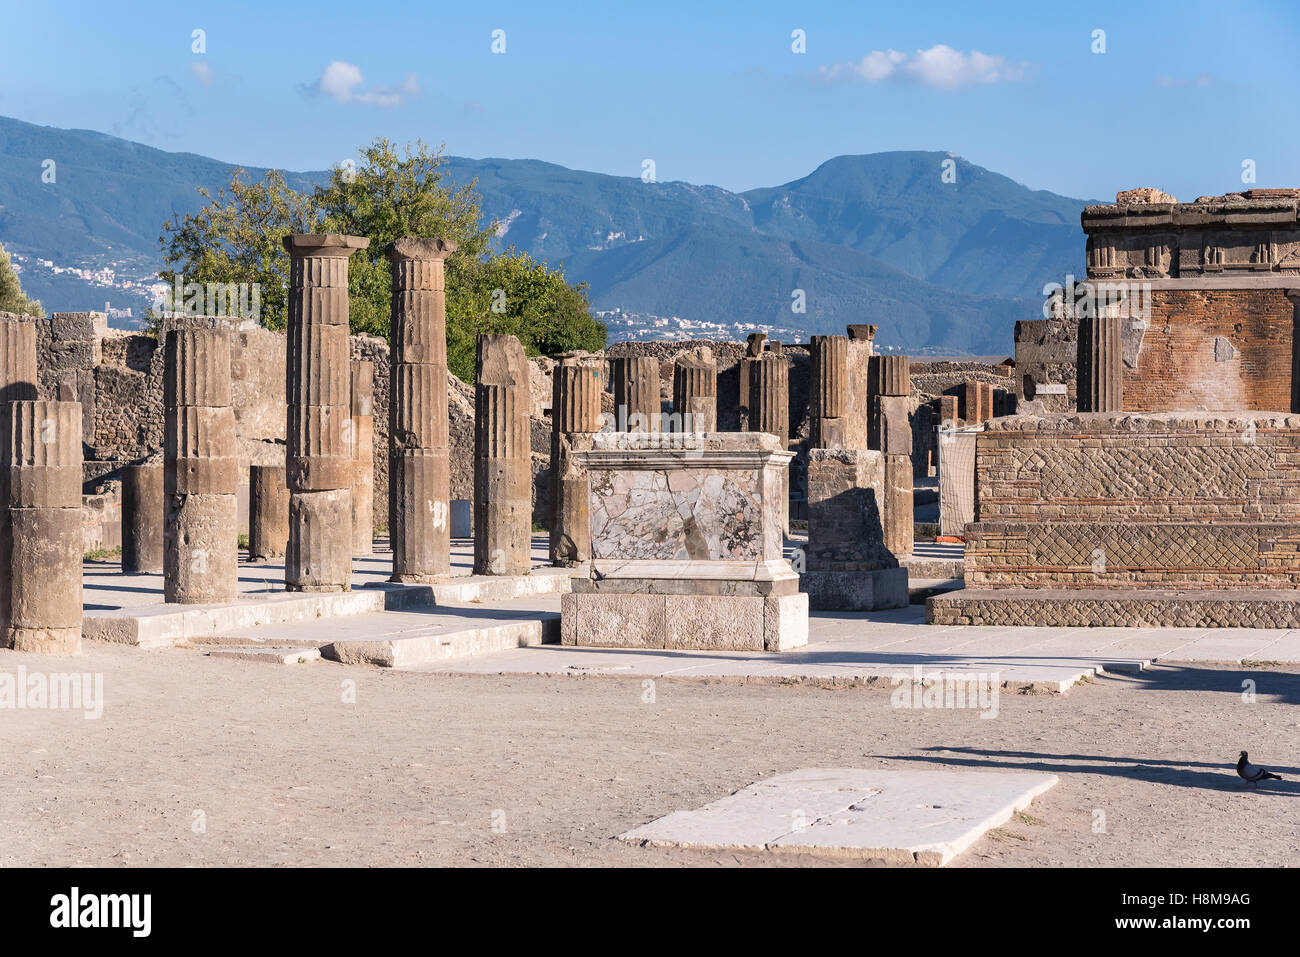 Ruins of Pompeii, the ancient Roman city destroyed during a catastrophic eruption of the volcano Mount Vesuvius - Stock Image